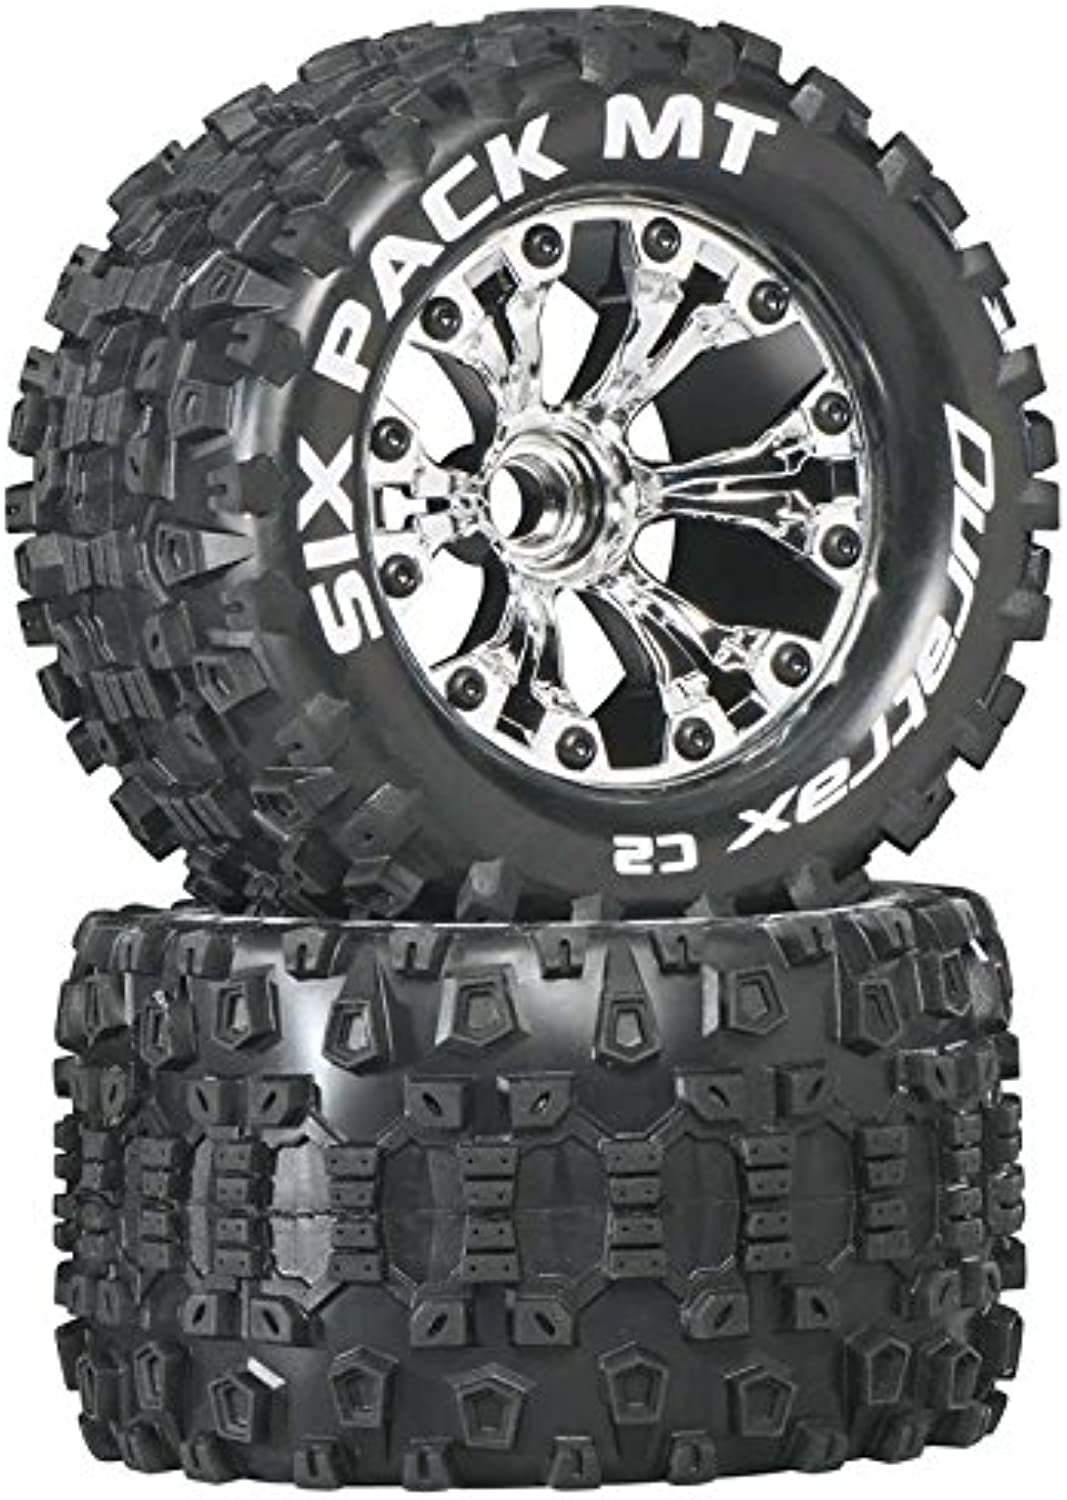 Duratrax Six Pack MT 2.8  RC Monster Truck Tires with Foam Inserts, C2 Soft Compound, Mounted on Front Chrome Wheels (Set of 2)